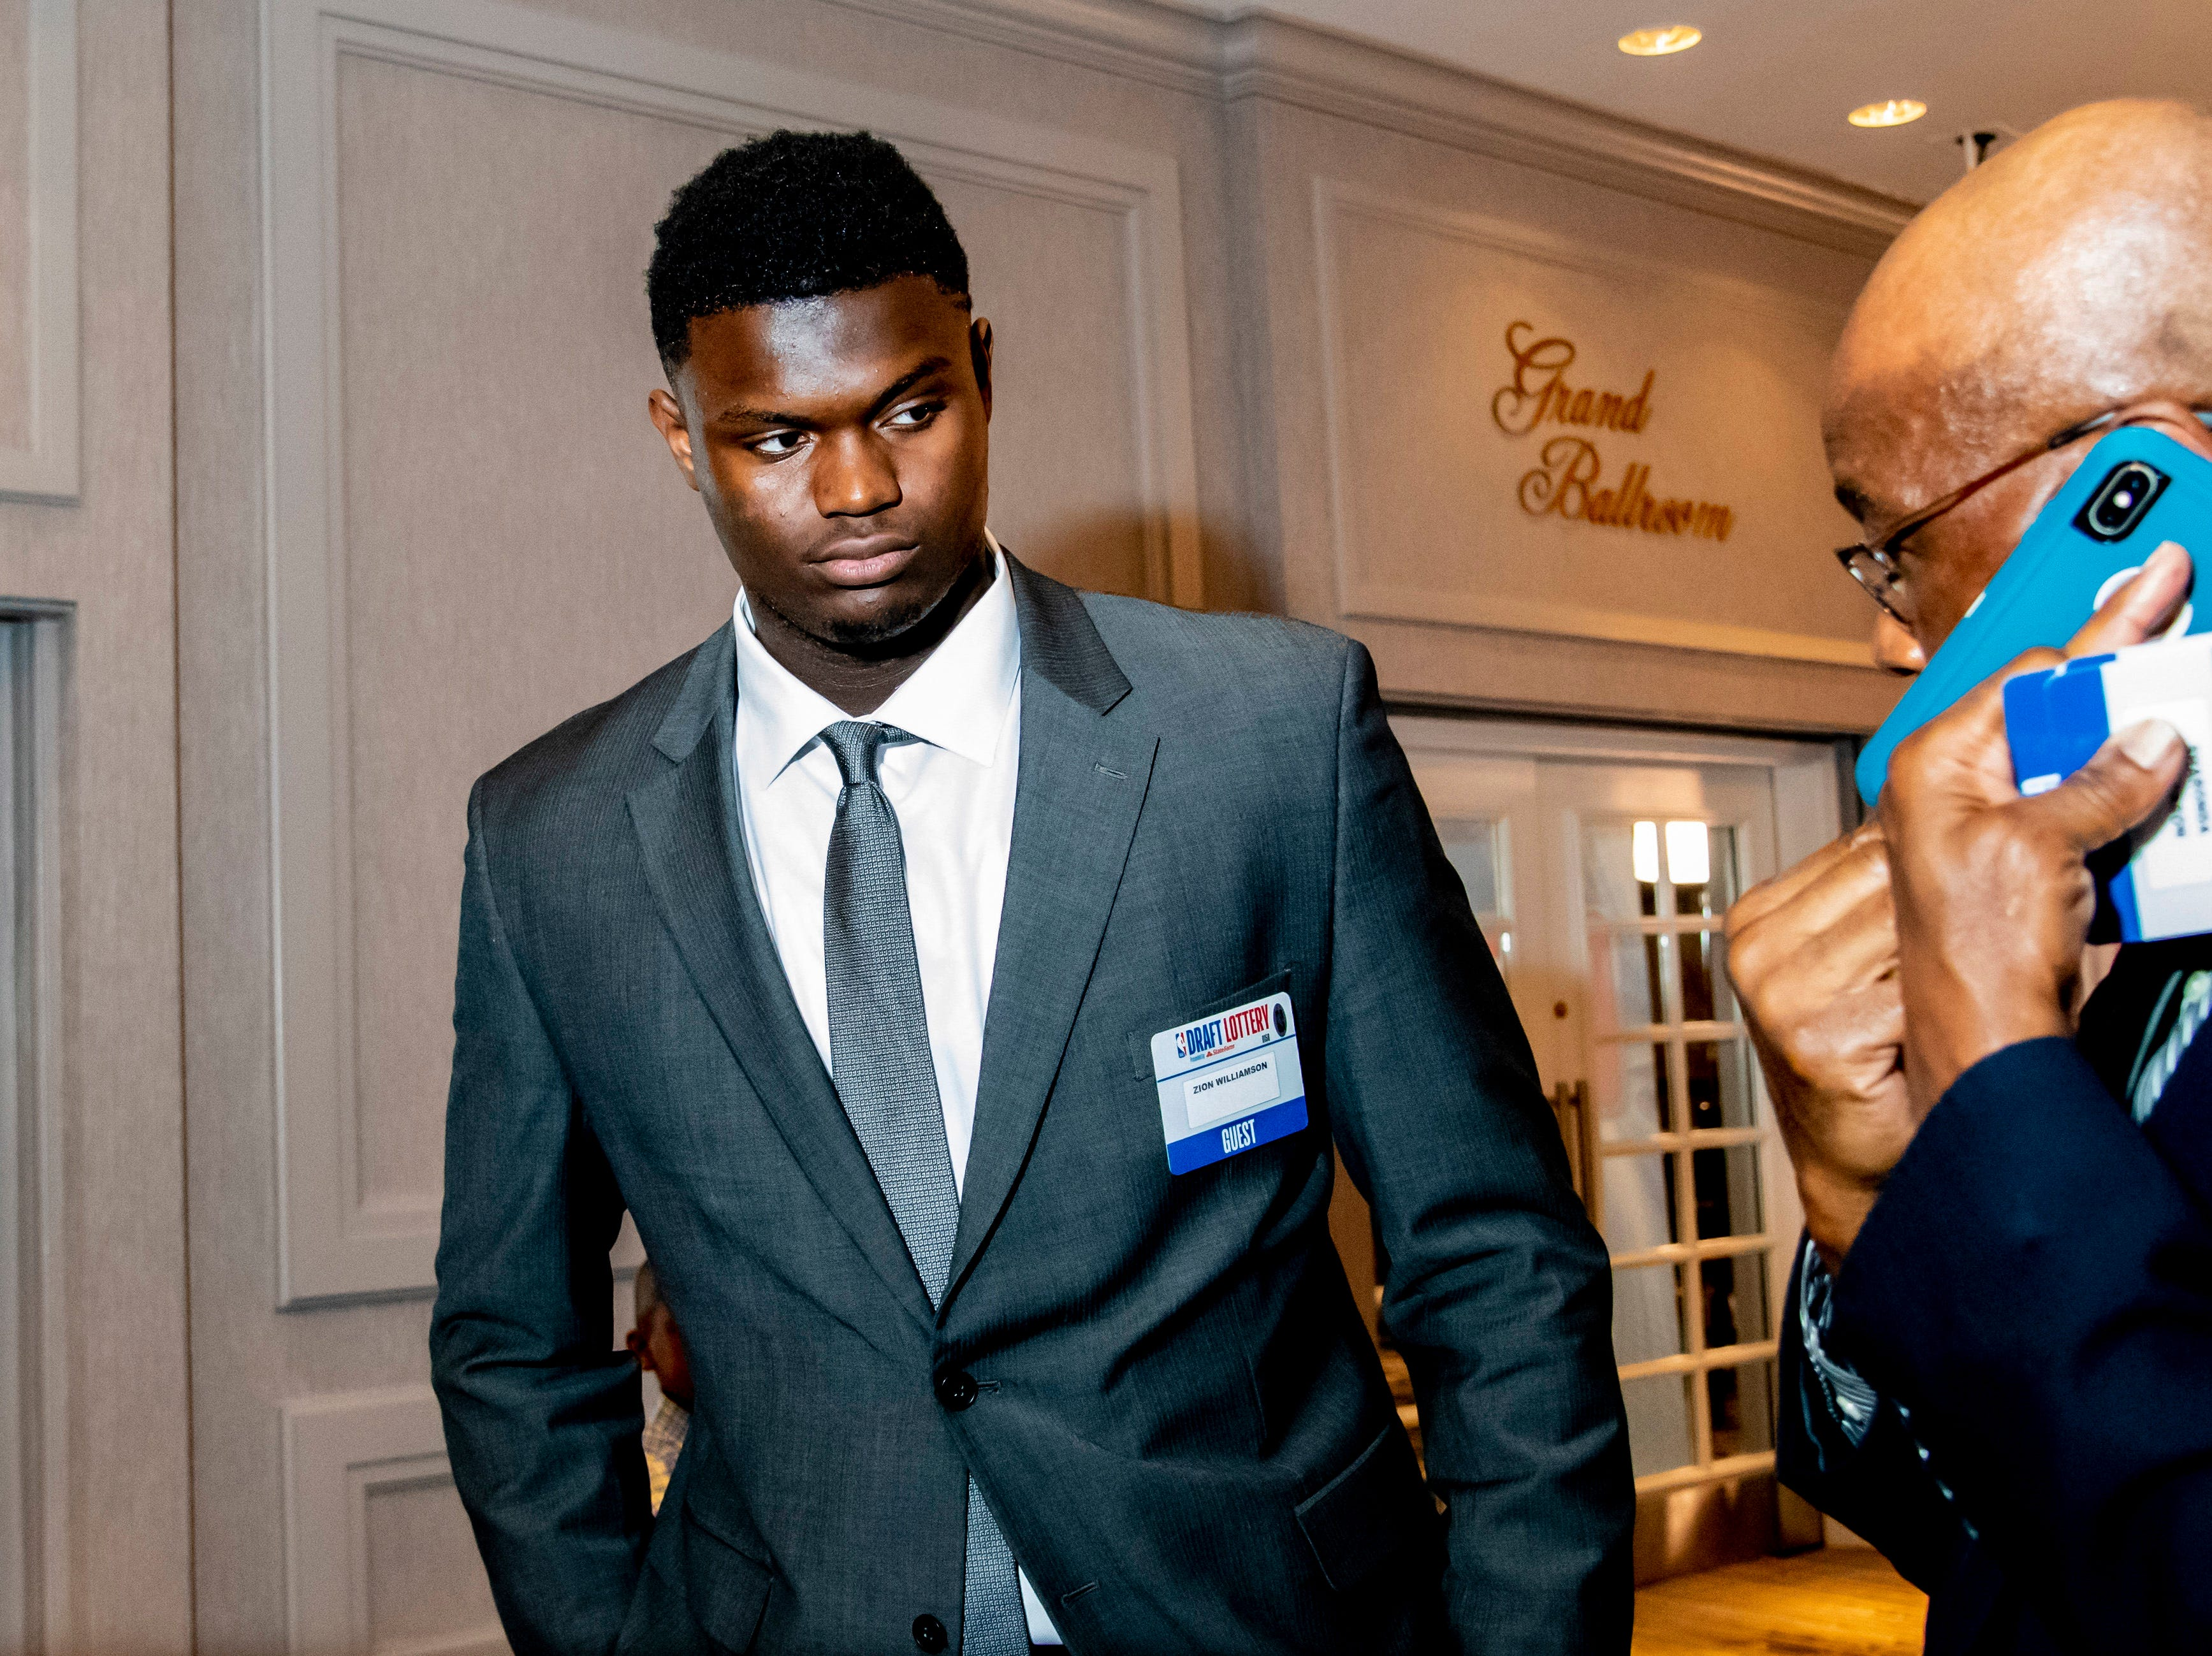 May 14, 2019; Chicago, IL, USA; Duke forward Zion Williamson is seen prior to the 2019 NBA Draft Lottery at the Hilton Chicago. Mandatory Credit: Patrick Gorski-USA TODAY Sports